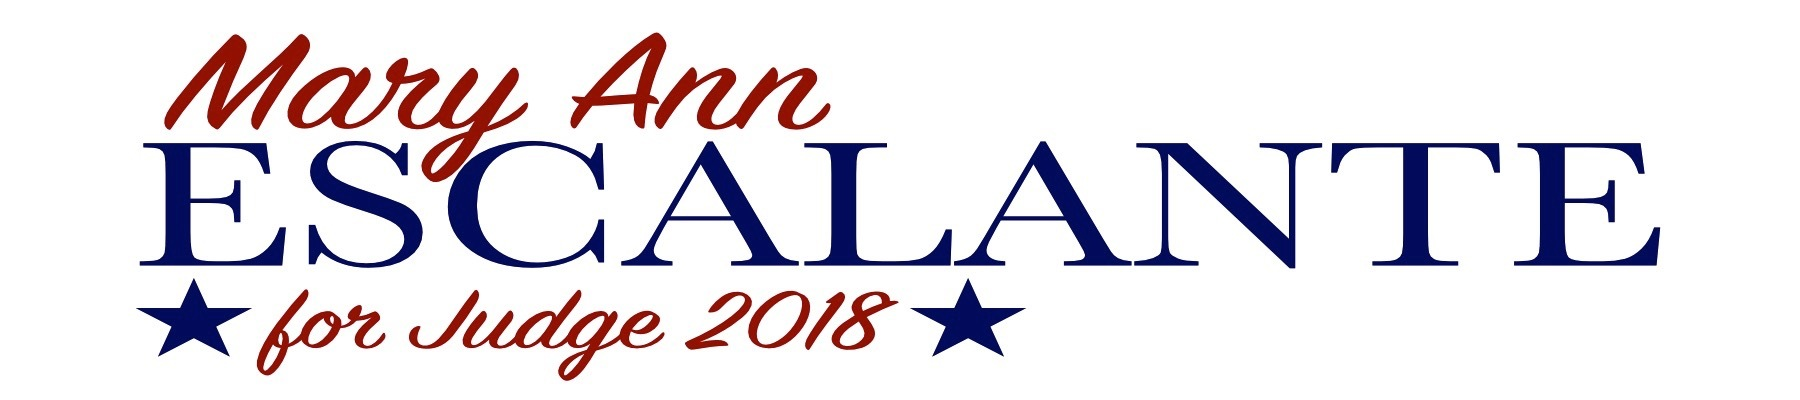 Mary Ann Escalante for Judge 2018: General Fund